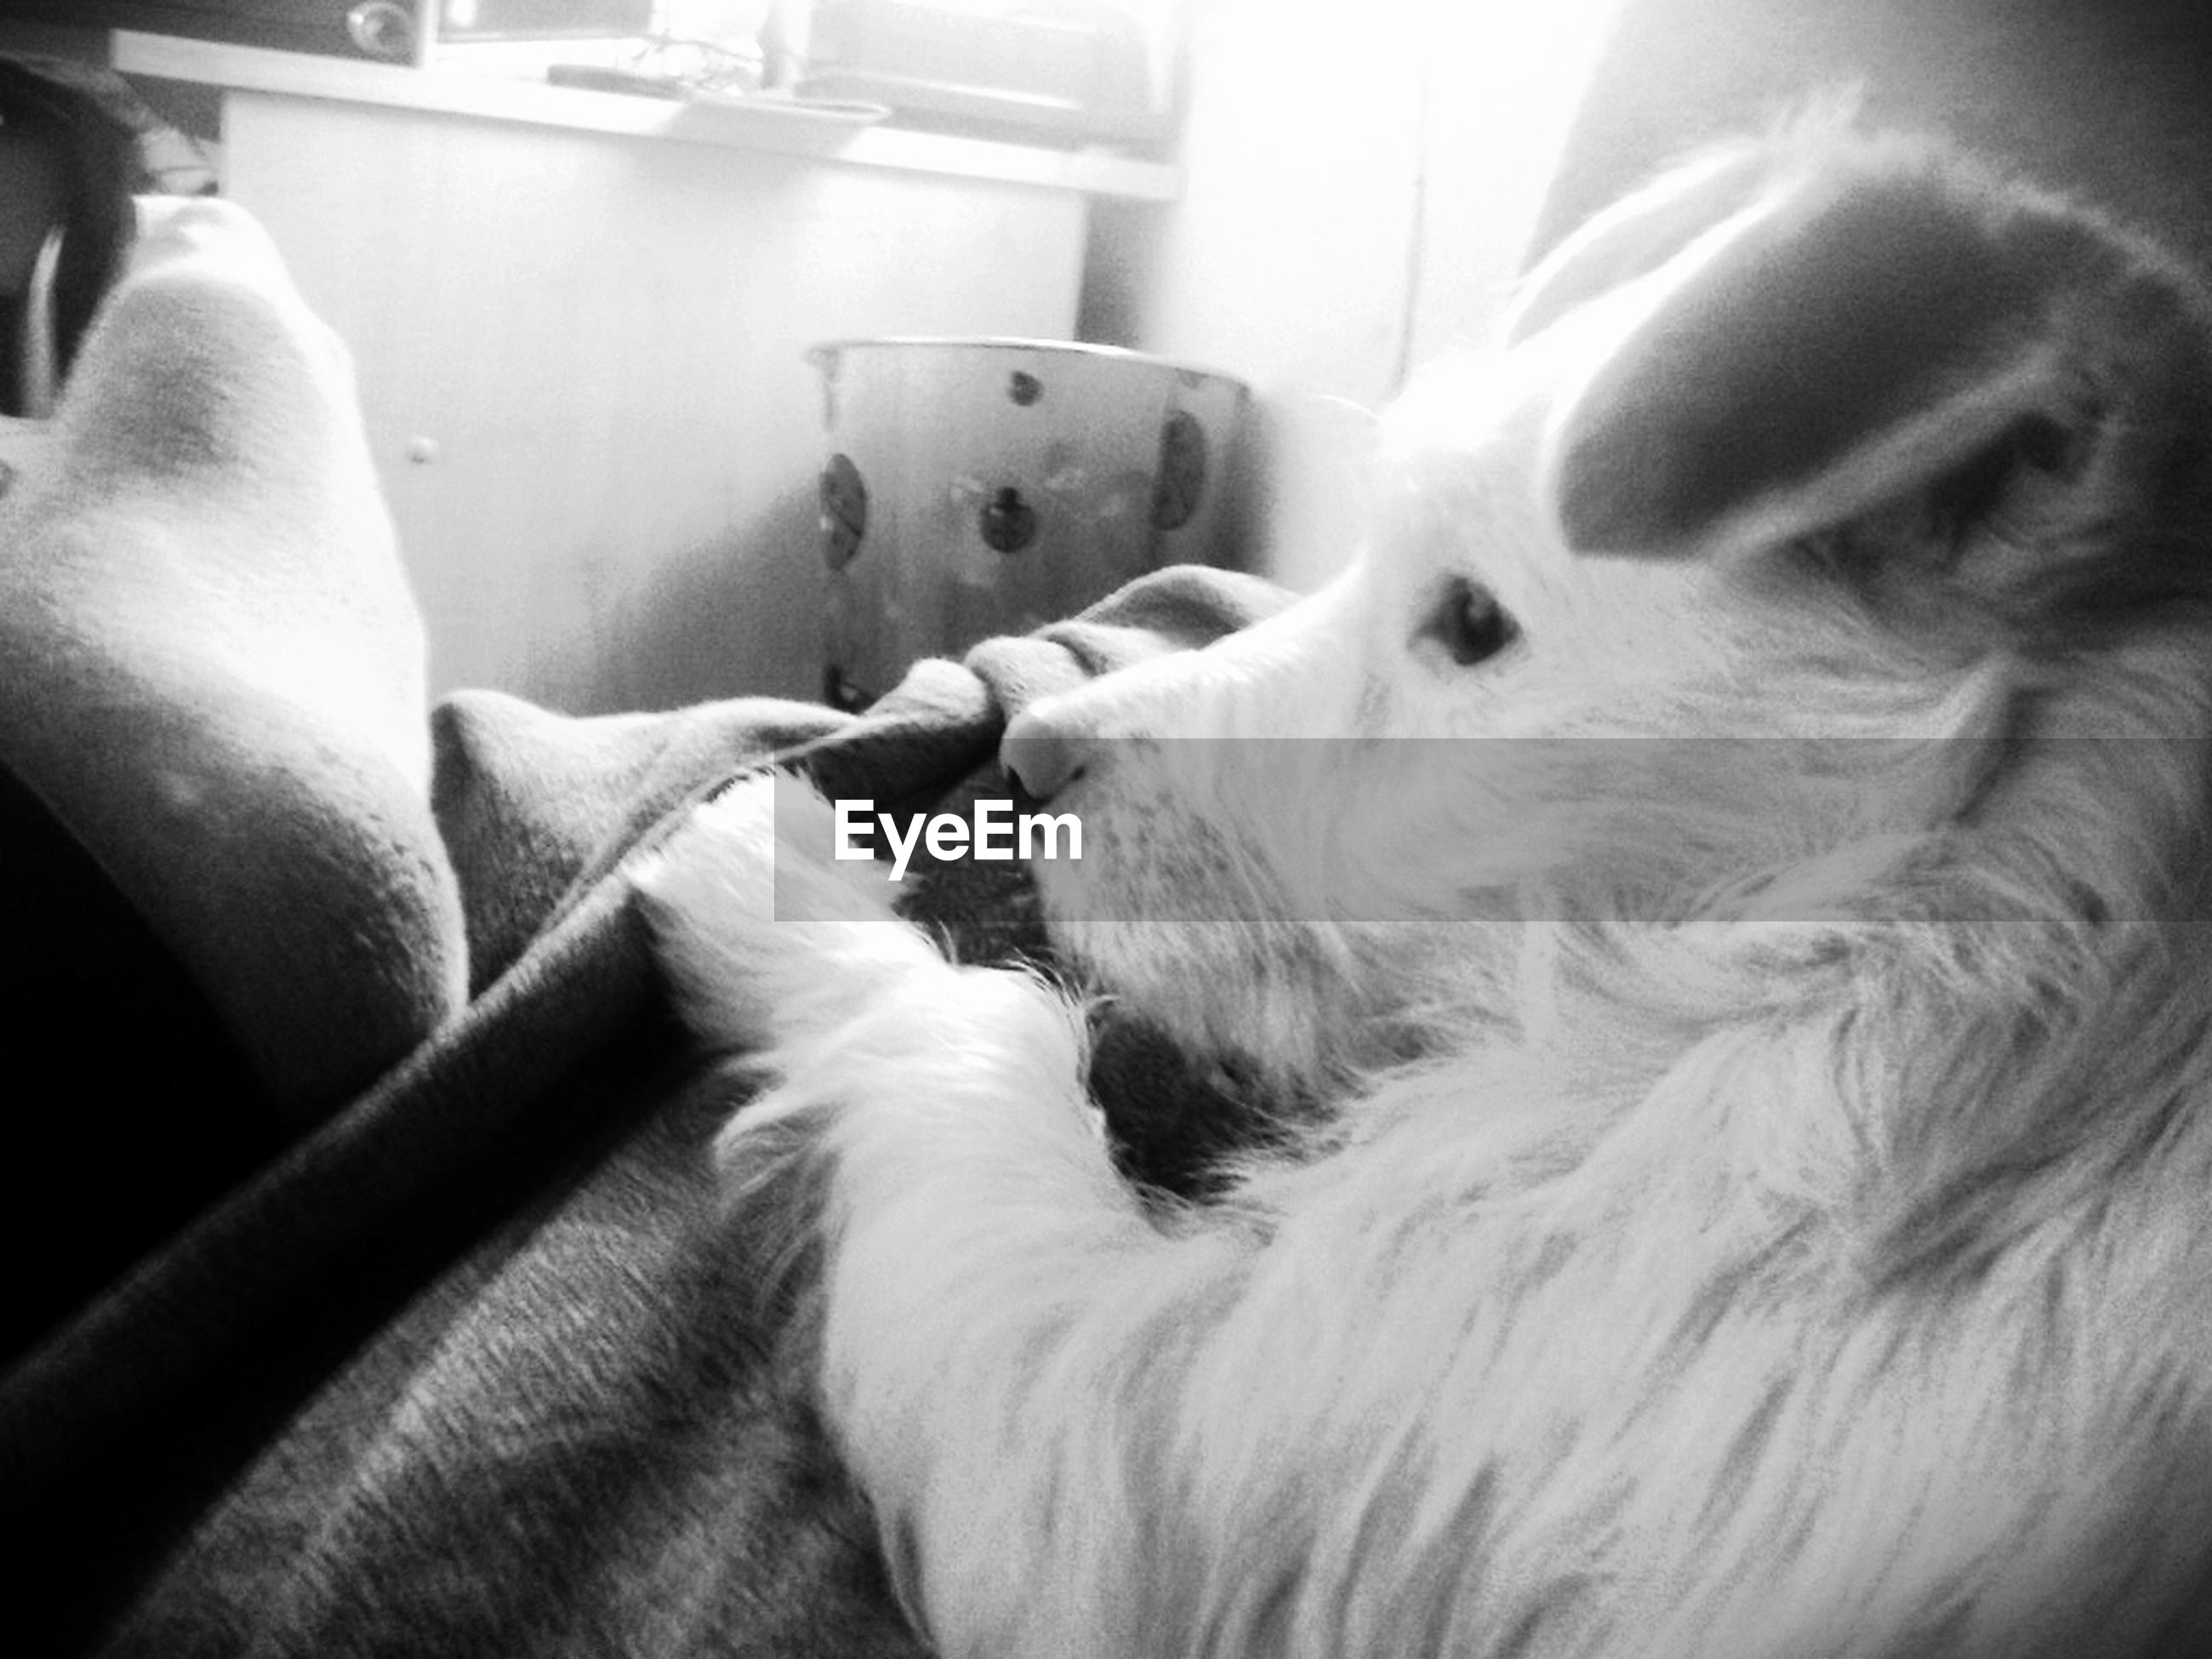 indoors, pets, domestic animals, animal themes, one animal, mammal, relaxation, sleeping, home interior, bed, resting, dog, domestic cat, lying down, sofa, close-up, home, cat, cute, comfortable